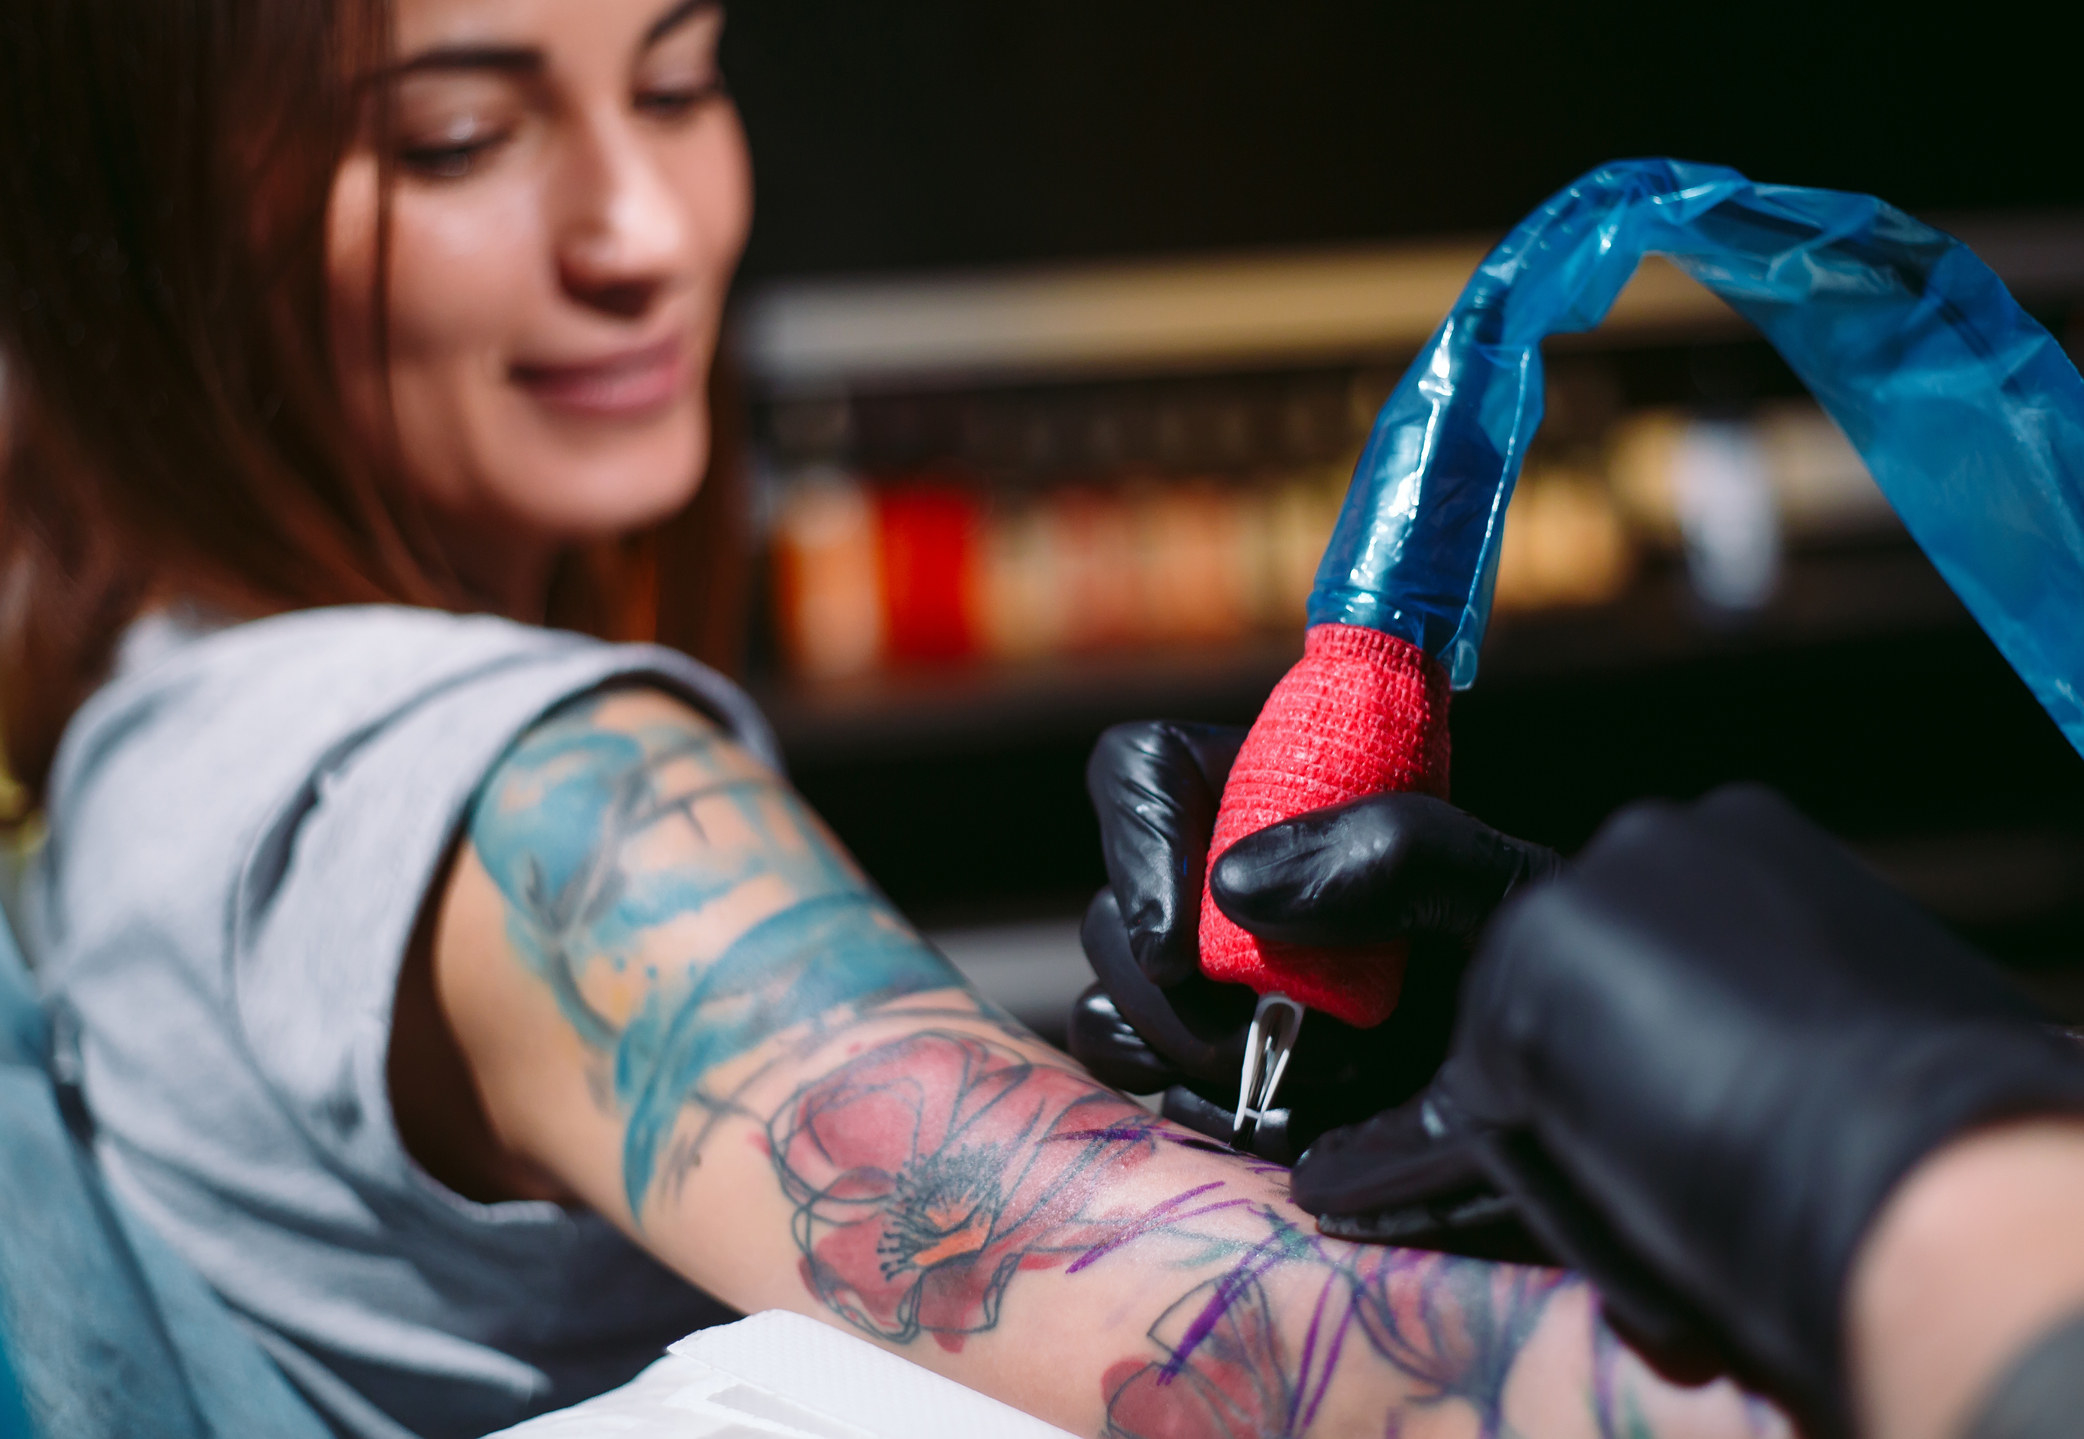 artist in process of tattooing